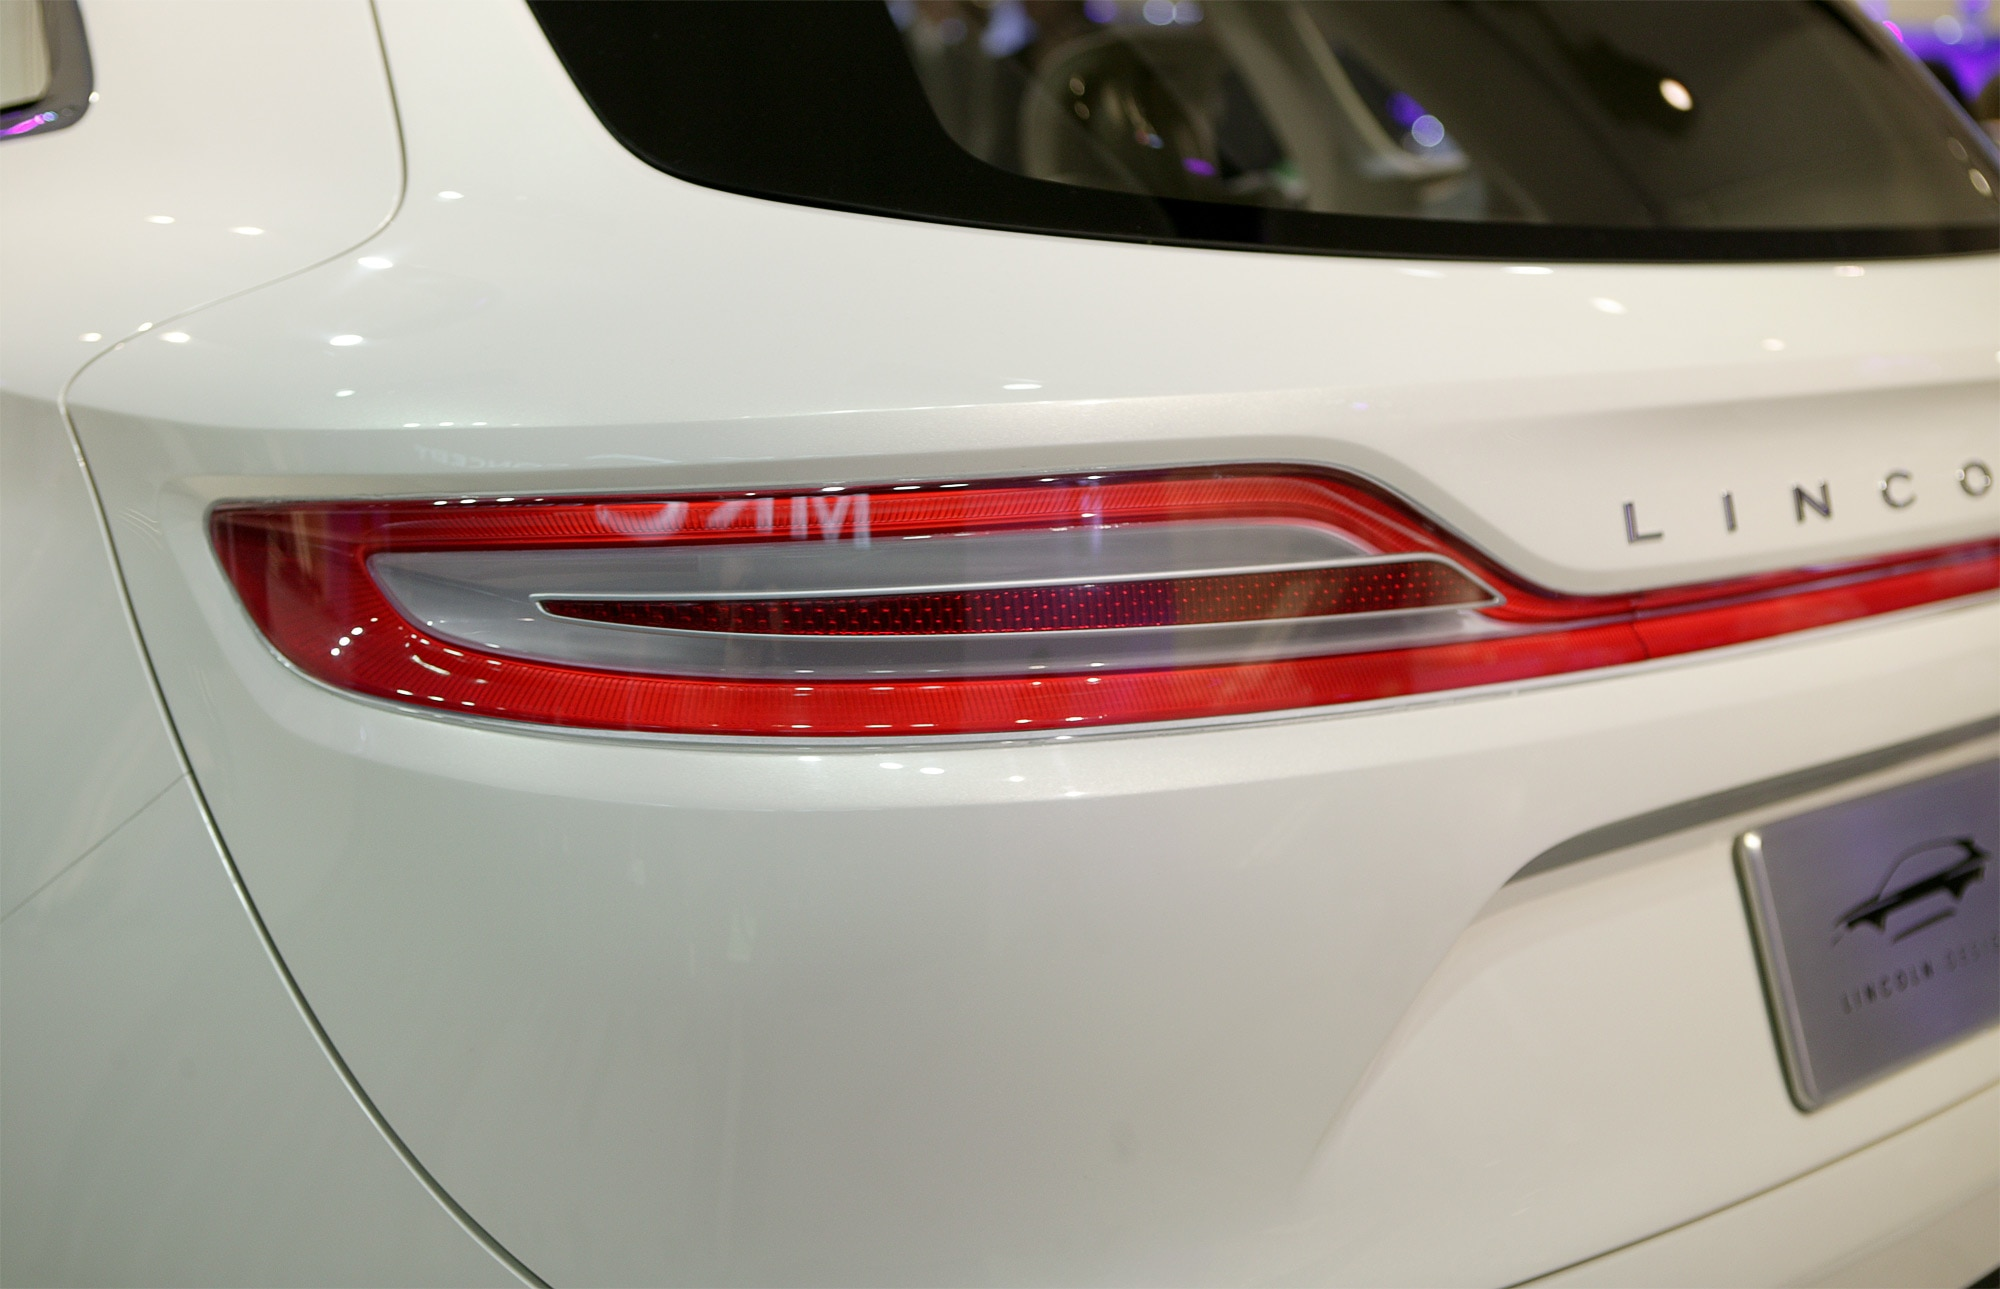 http://st.automobilemag.com/uploads/sites/11/2013/01/Lincoln-MKC-Concept-taillight.jpg